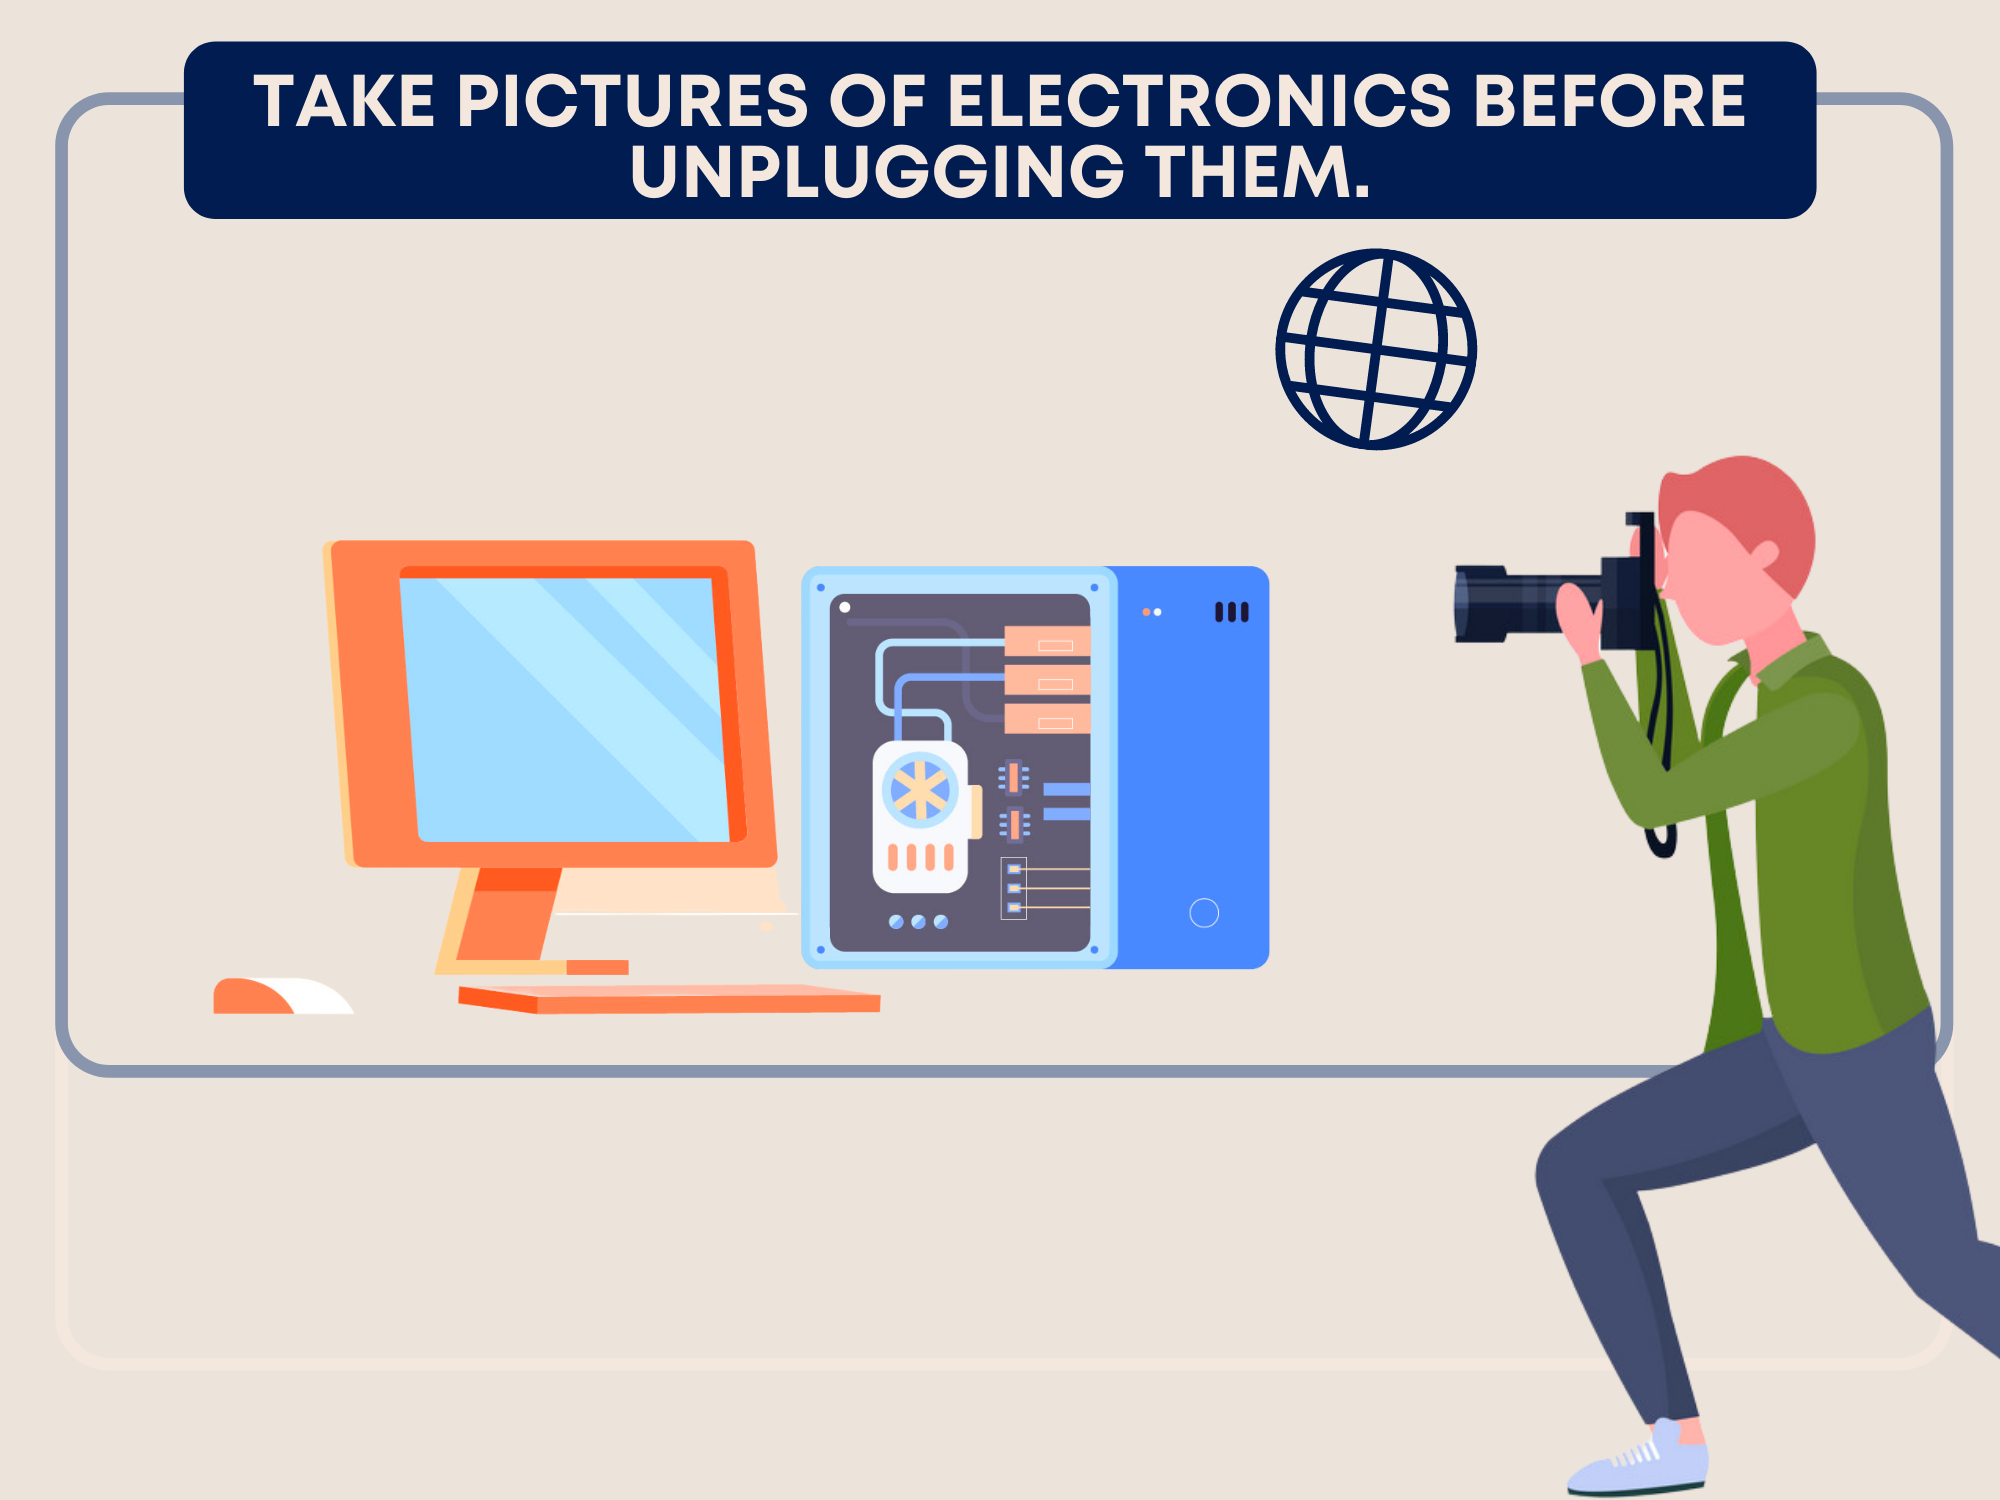 TAKE-PICTURES-OF-ELECTRONICS-BEFORE-UNPLUGGING-THEM